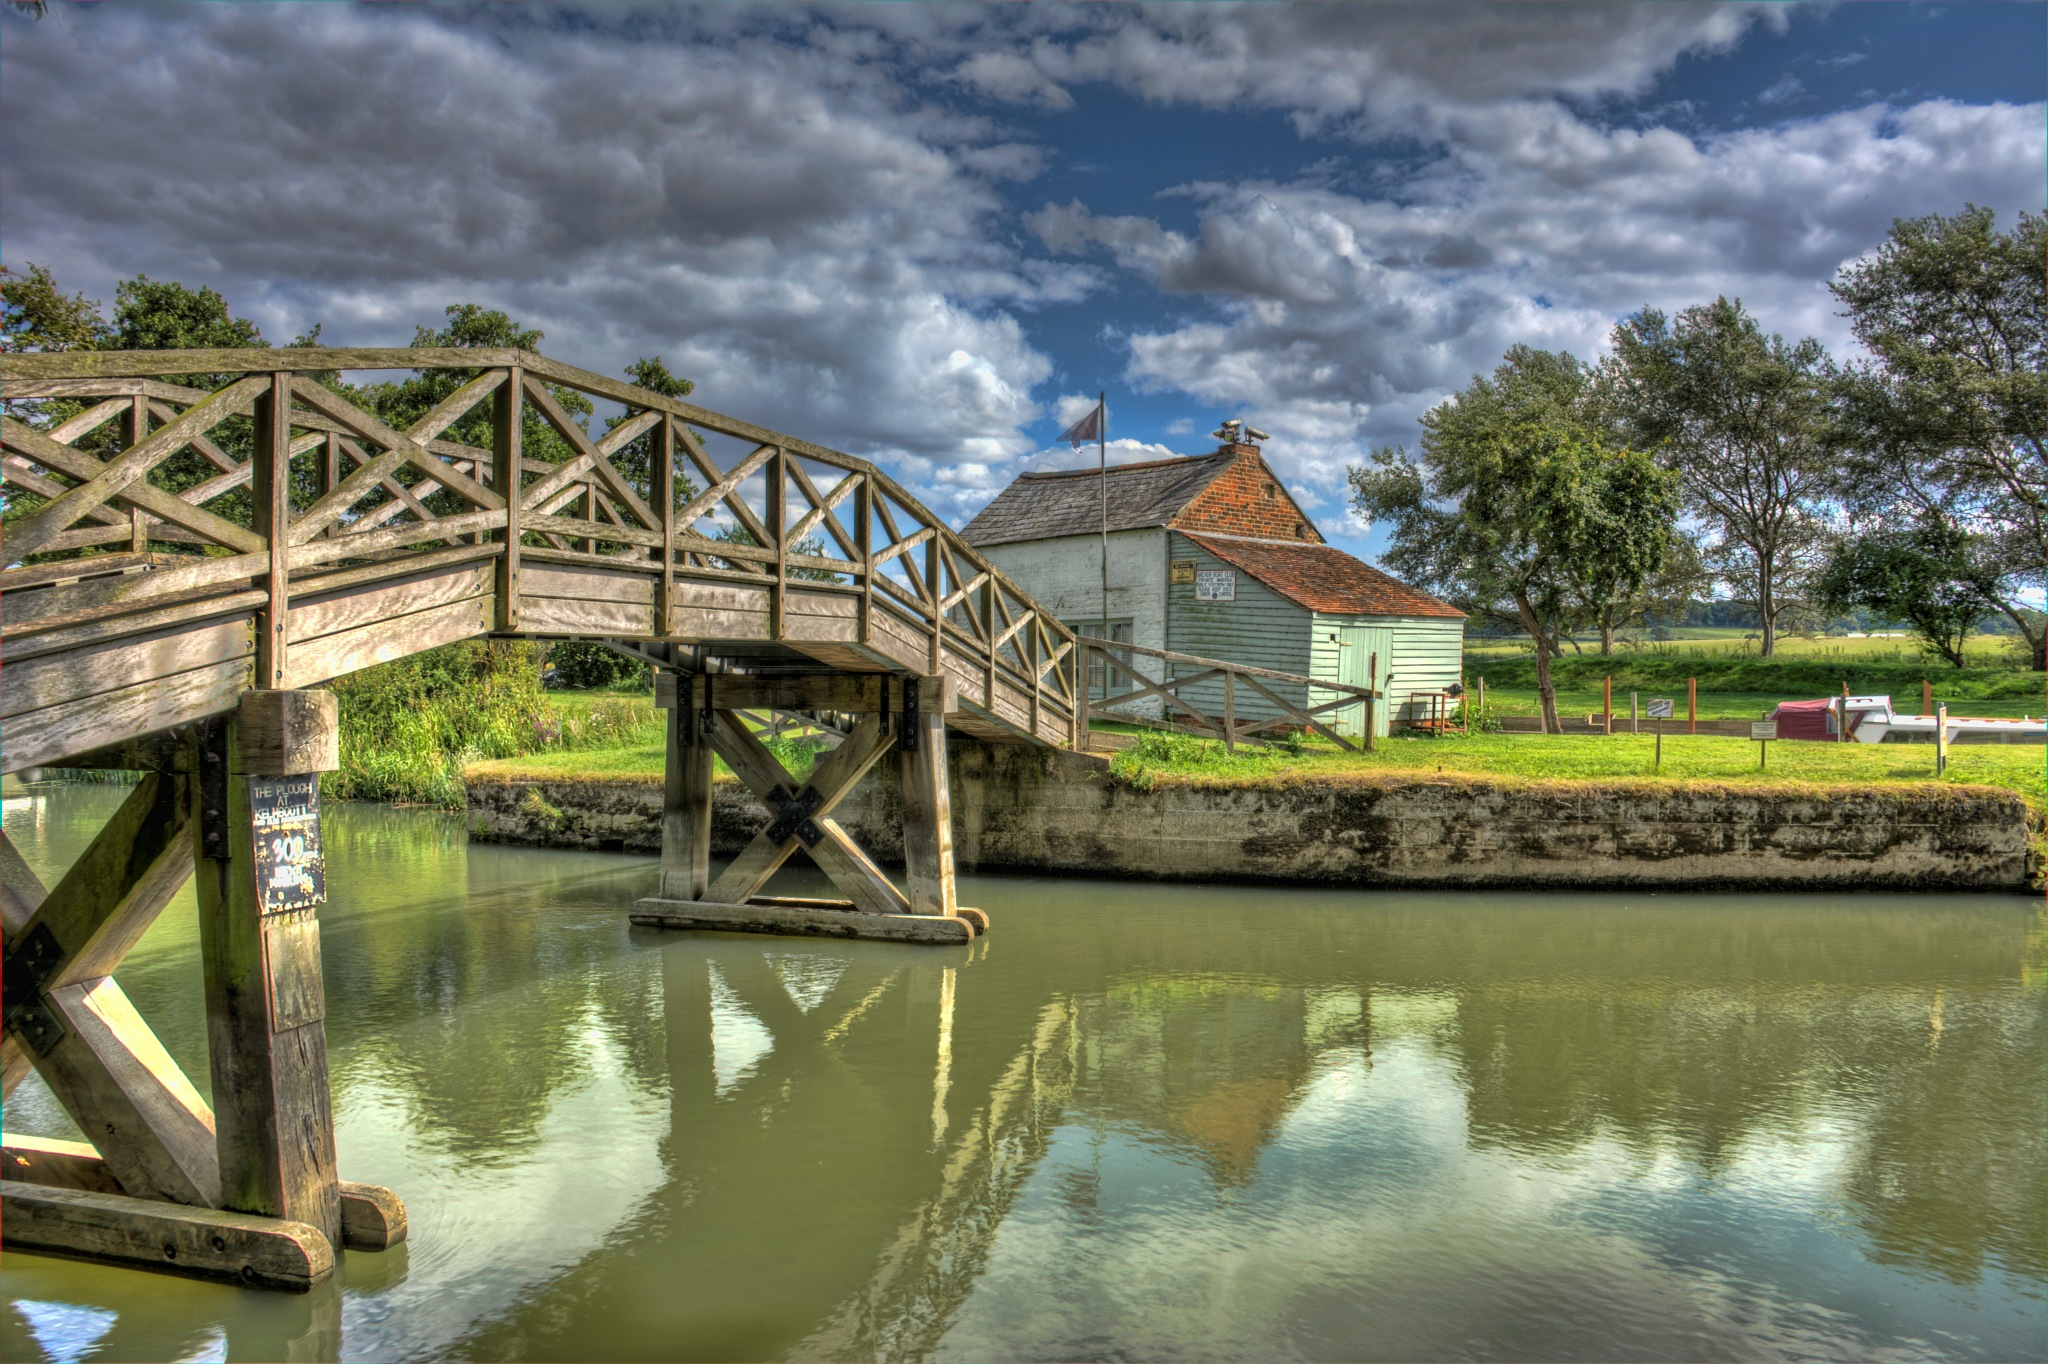 Bridge over the river by Garry Evans